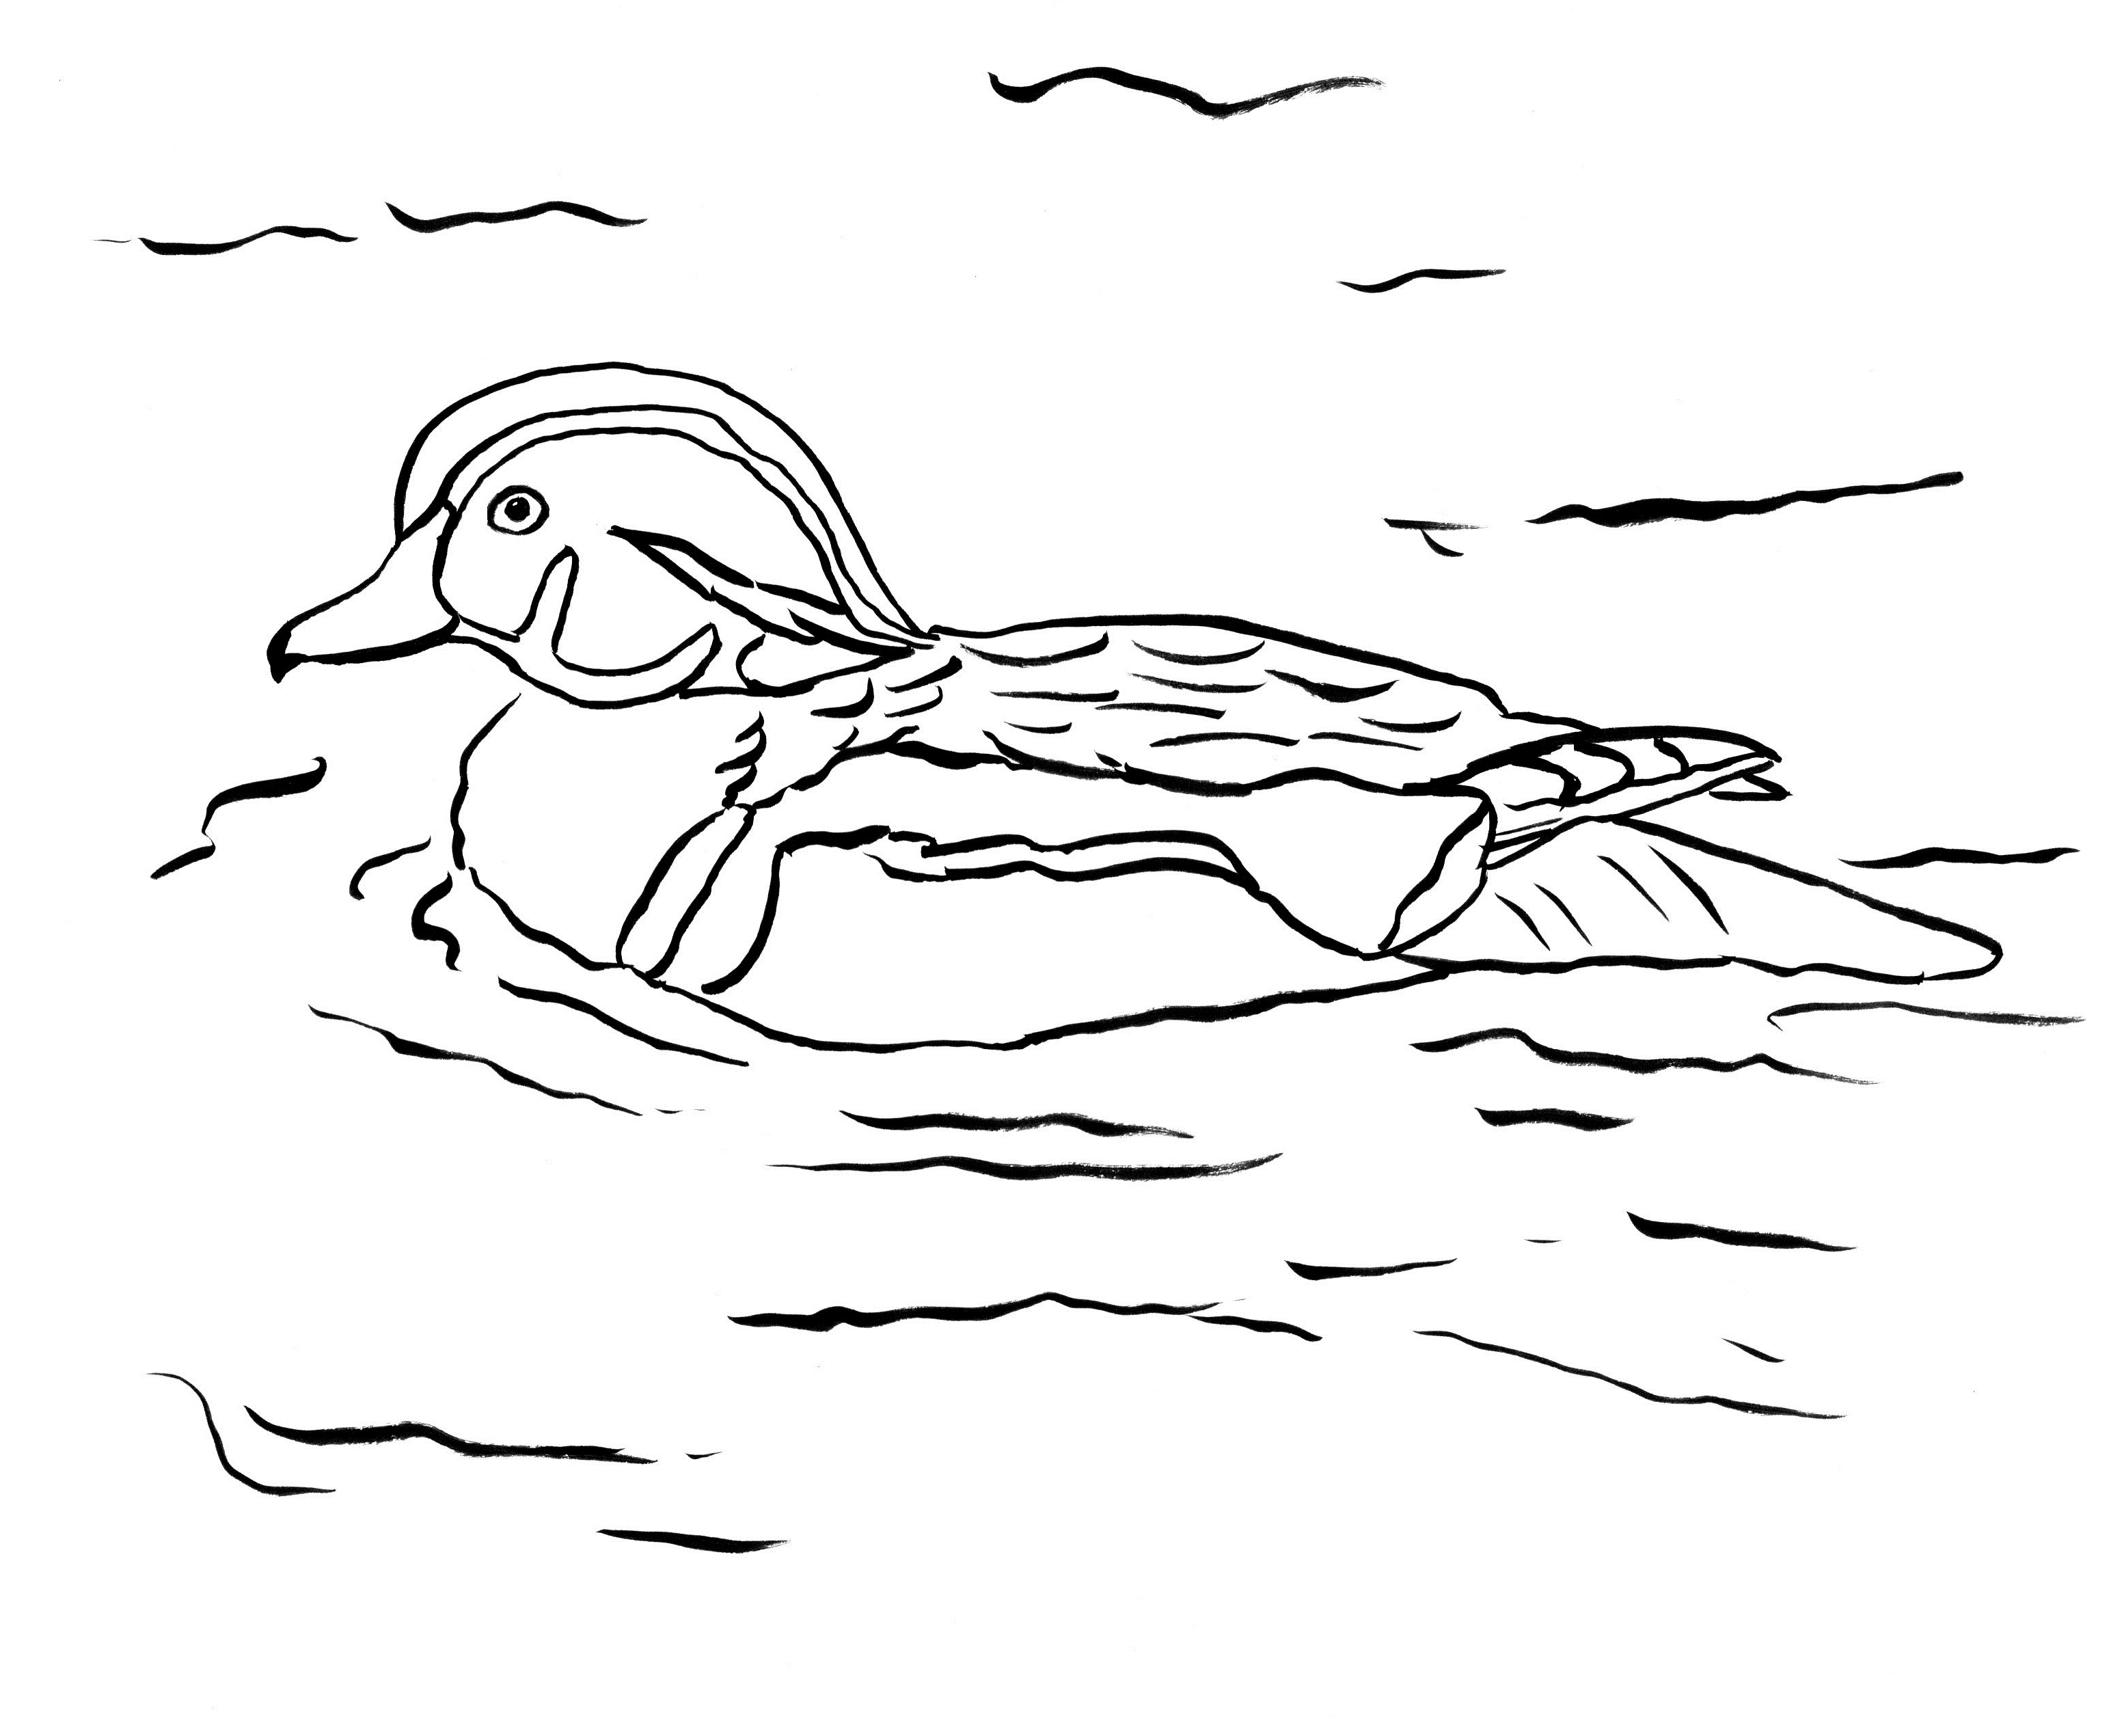 coloring duck clipart outline of a duck free download on clipartmag clipart coloring duck